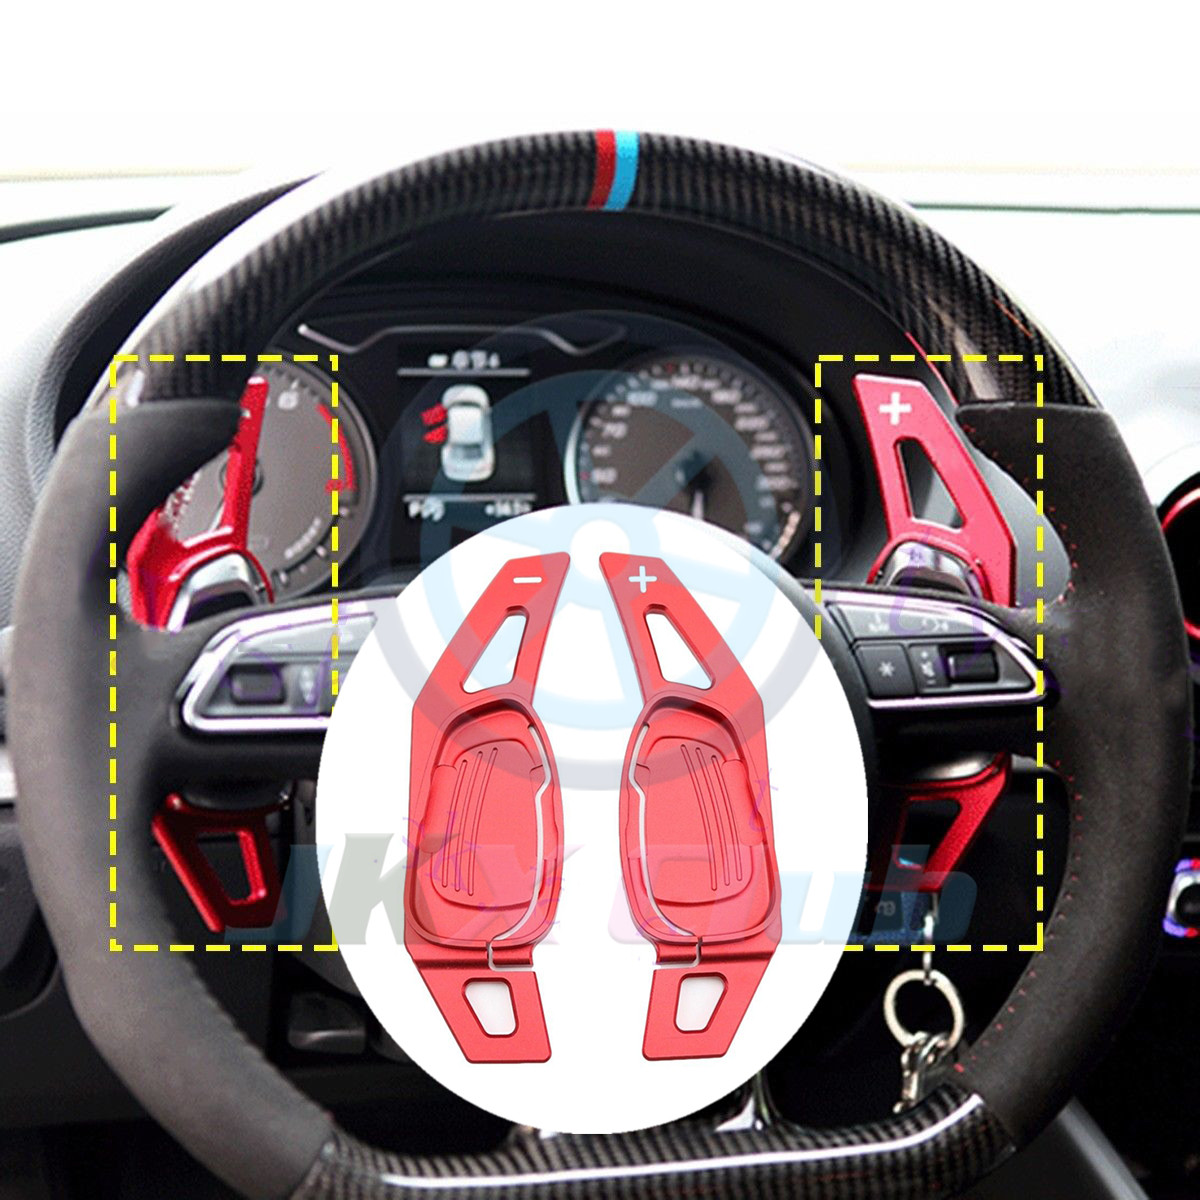 Steering Wheel Paddle Black Aluminum Alloy Car Steering Wheel Shift Paddle Shifter for Audi A5 S3 S5 S6 SQ5 RS3 RS6 RS7